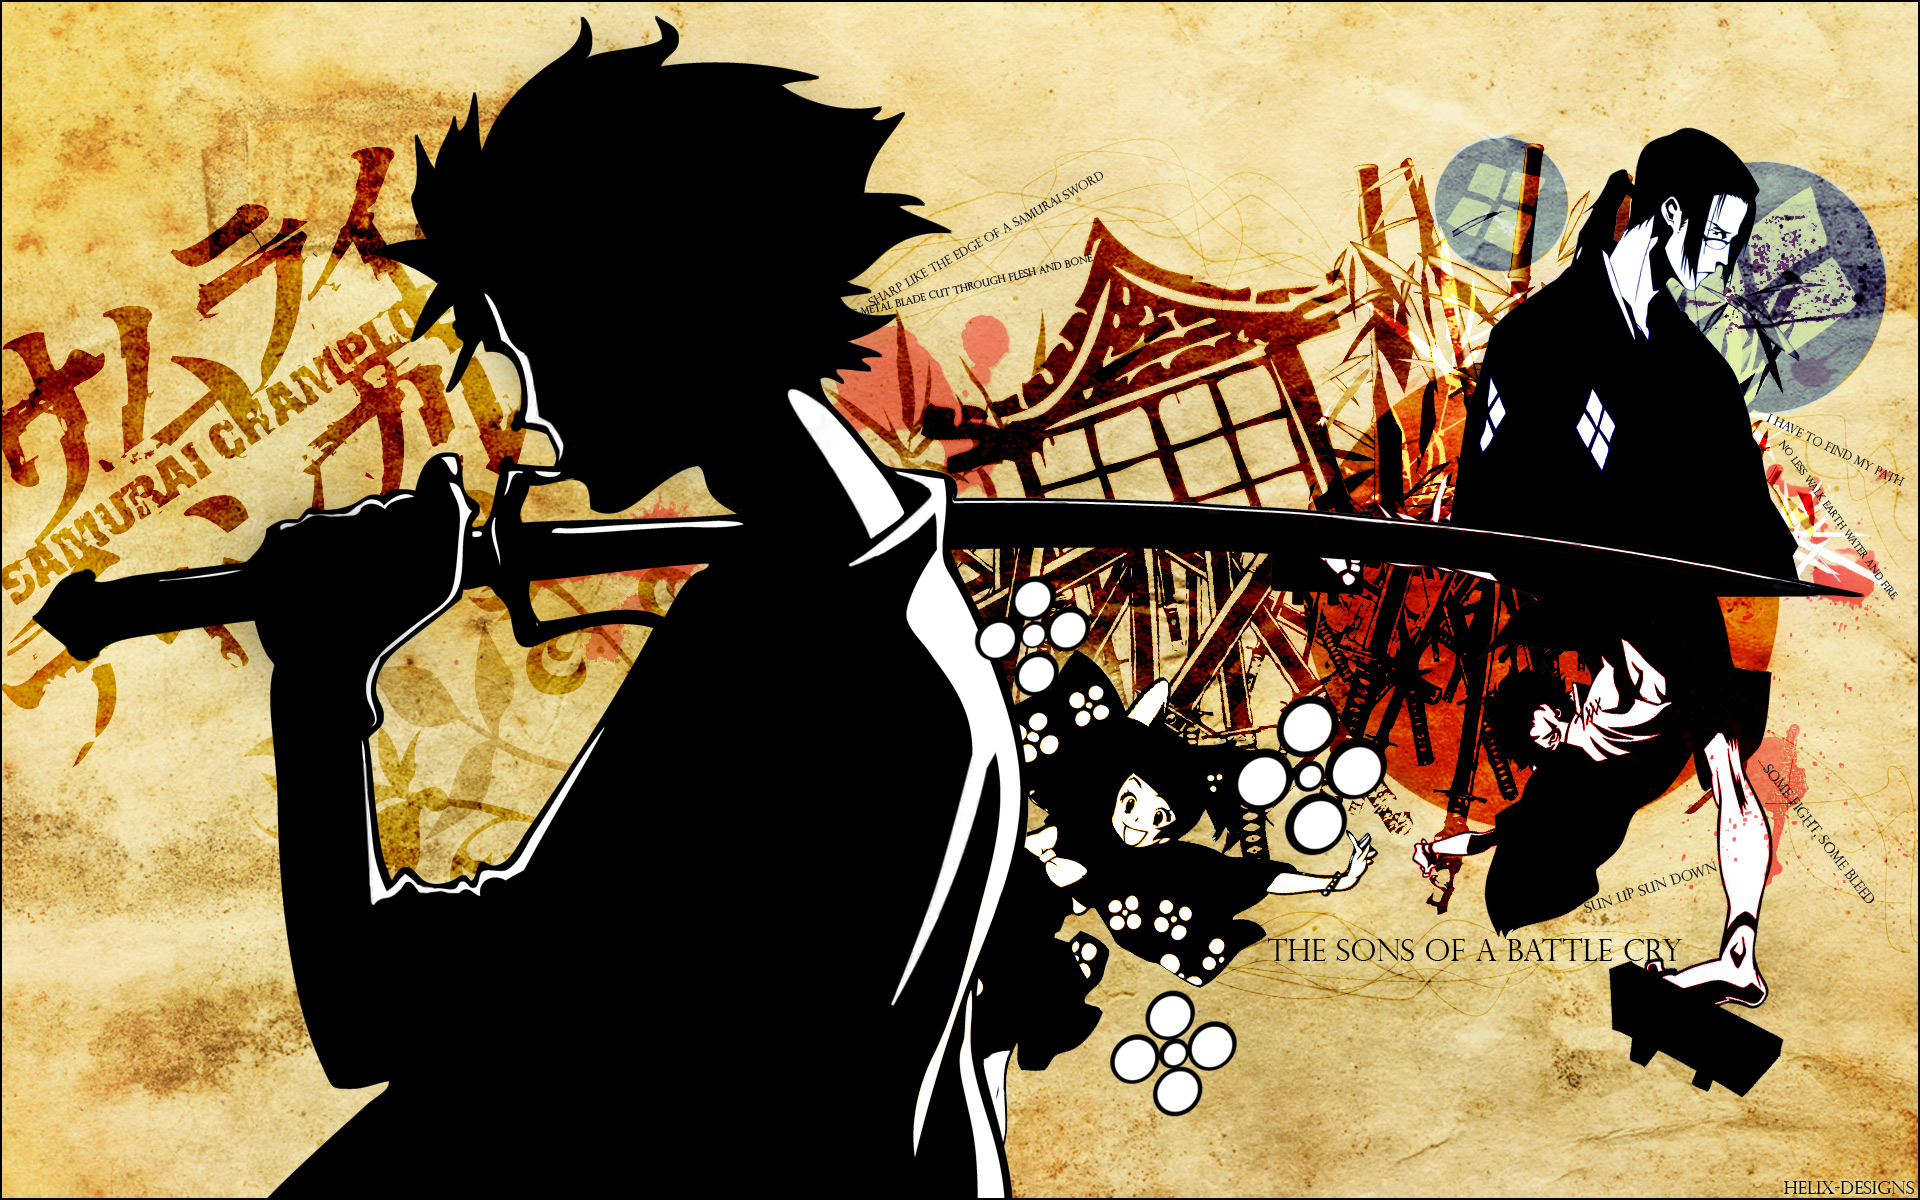 Samurai Champloo Res: 1920x1200 / Size:913kb. Views: 9596